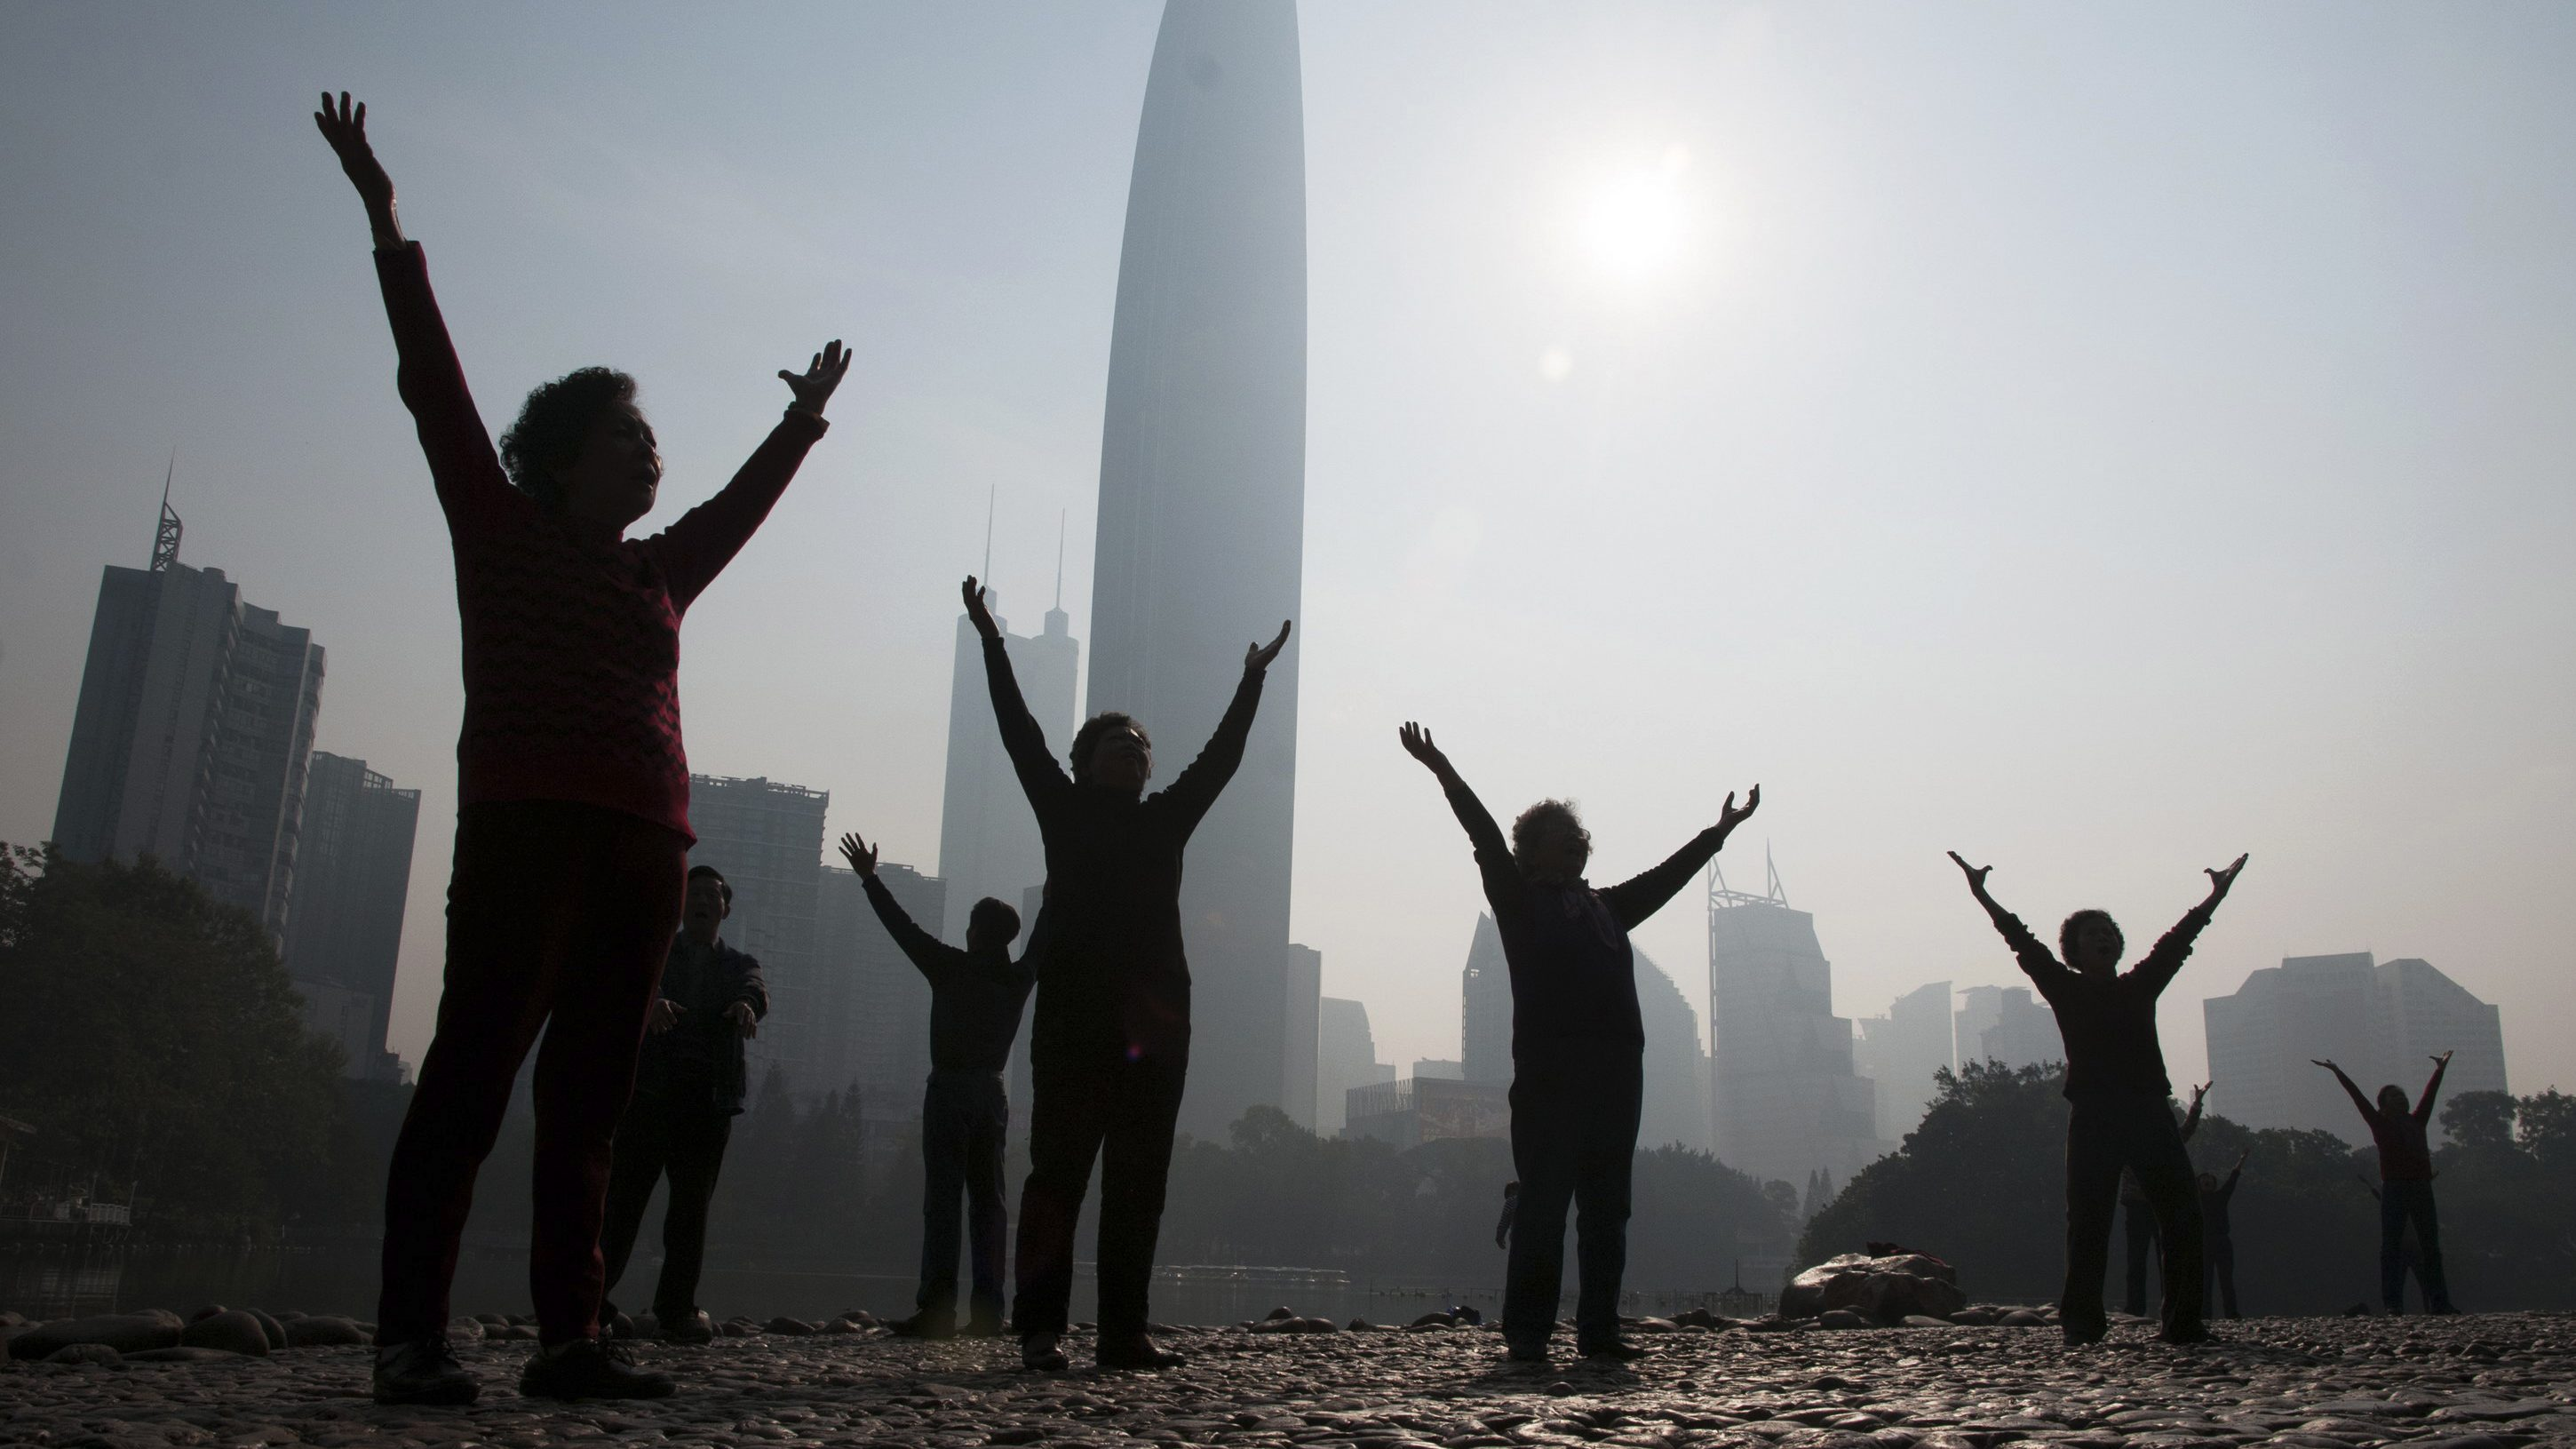 """Residents do morning exercises at a park on a hazy day in Shenzhen, Guangdong province February 12, 2015. Nearly 90 percent of China's big cities failed to meet air quality standards in 2014, but that was still an improvement on 2013 as the country's """"war on pollution"""" began to take effect, the environment ministry said on February 2. REUTERS/Stringer (CHINA - Tags: ENVIRONMENT SOCIETY) CHINA OUT. NO COMMERCIAL OR EDITORIAL SALES IN CHINA - RTR4P8T4"""